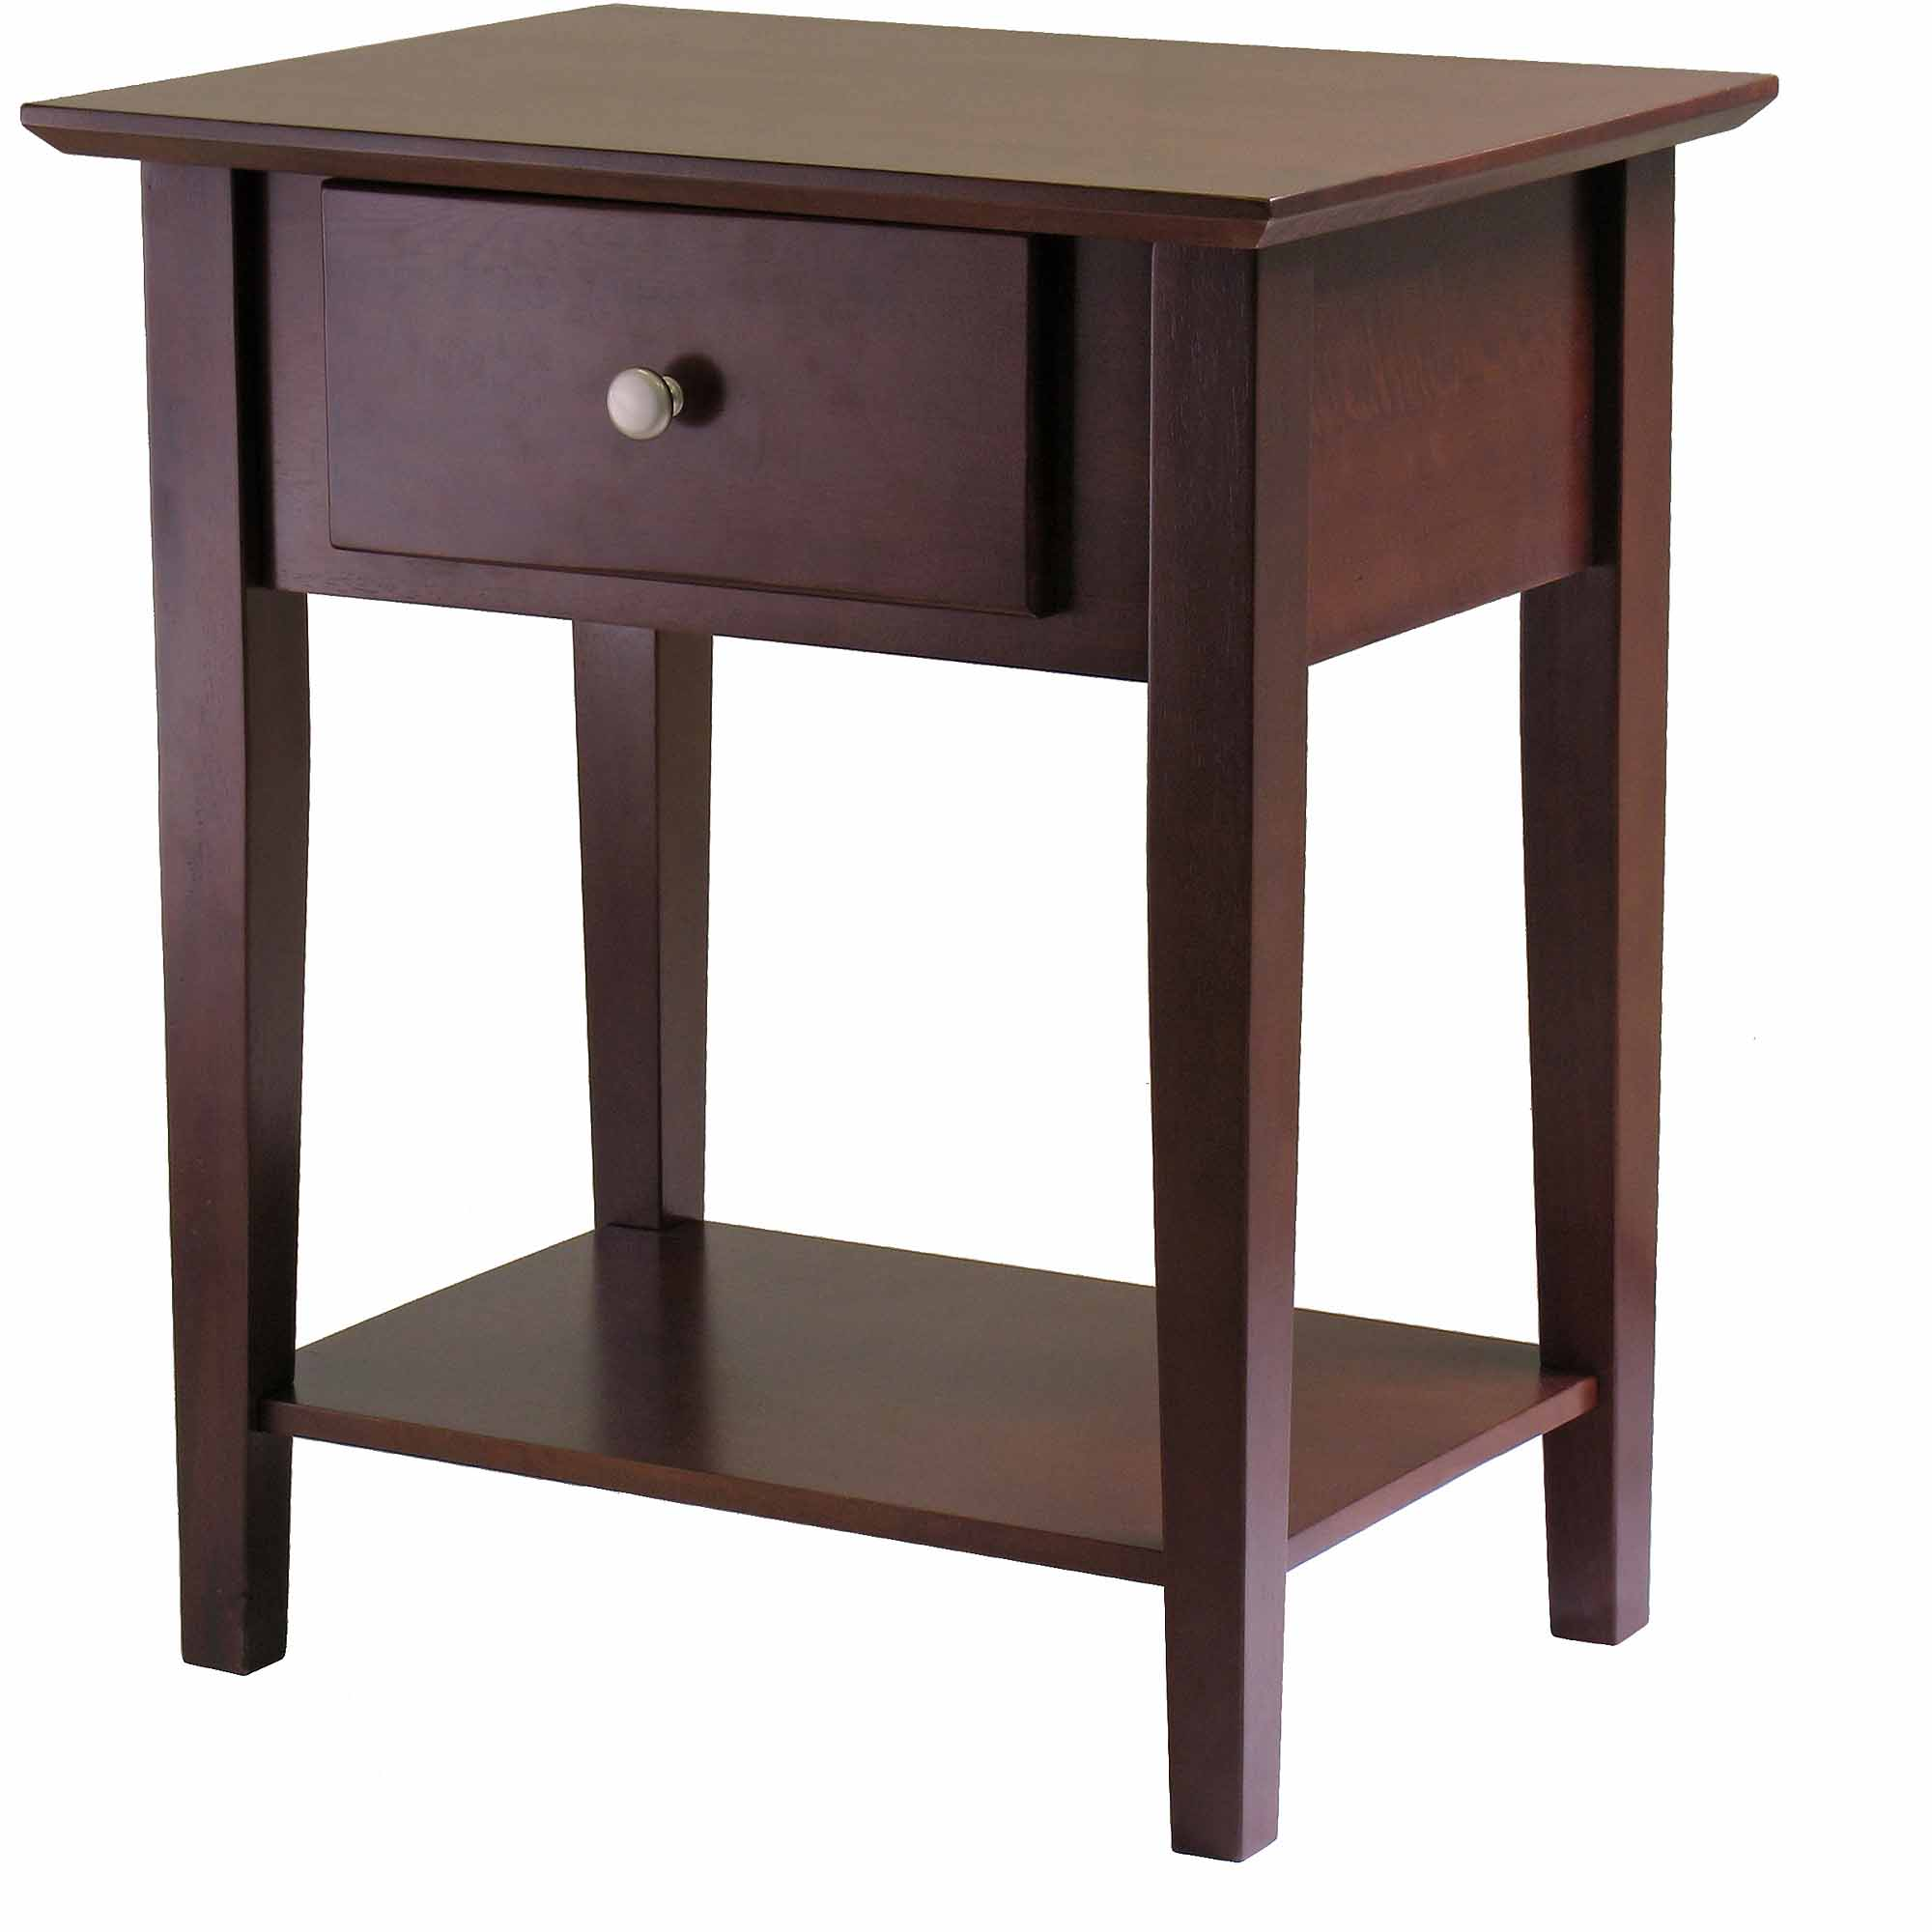 Winsome Shaker Nightstand with Drawer in Antique Walnut Finish